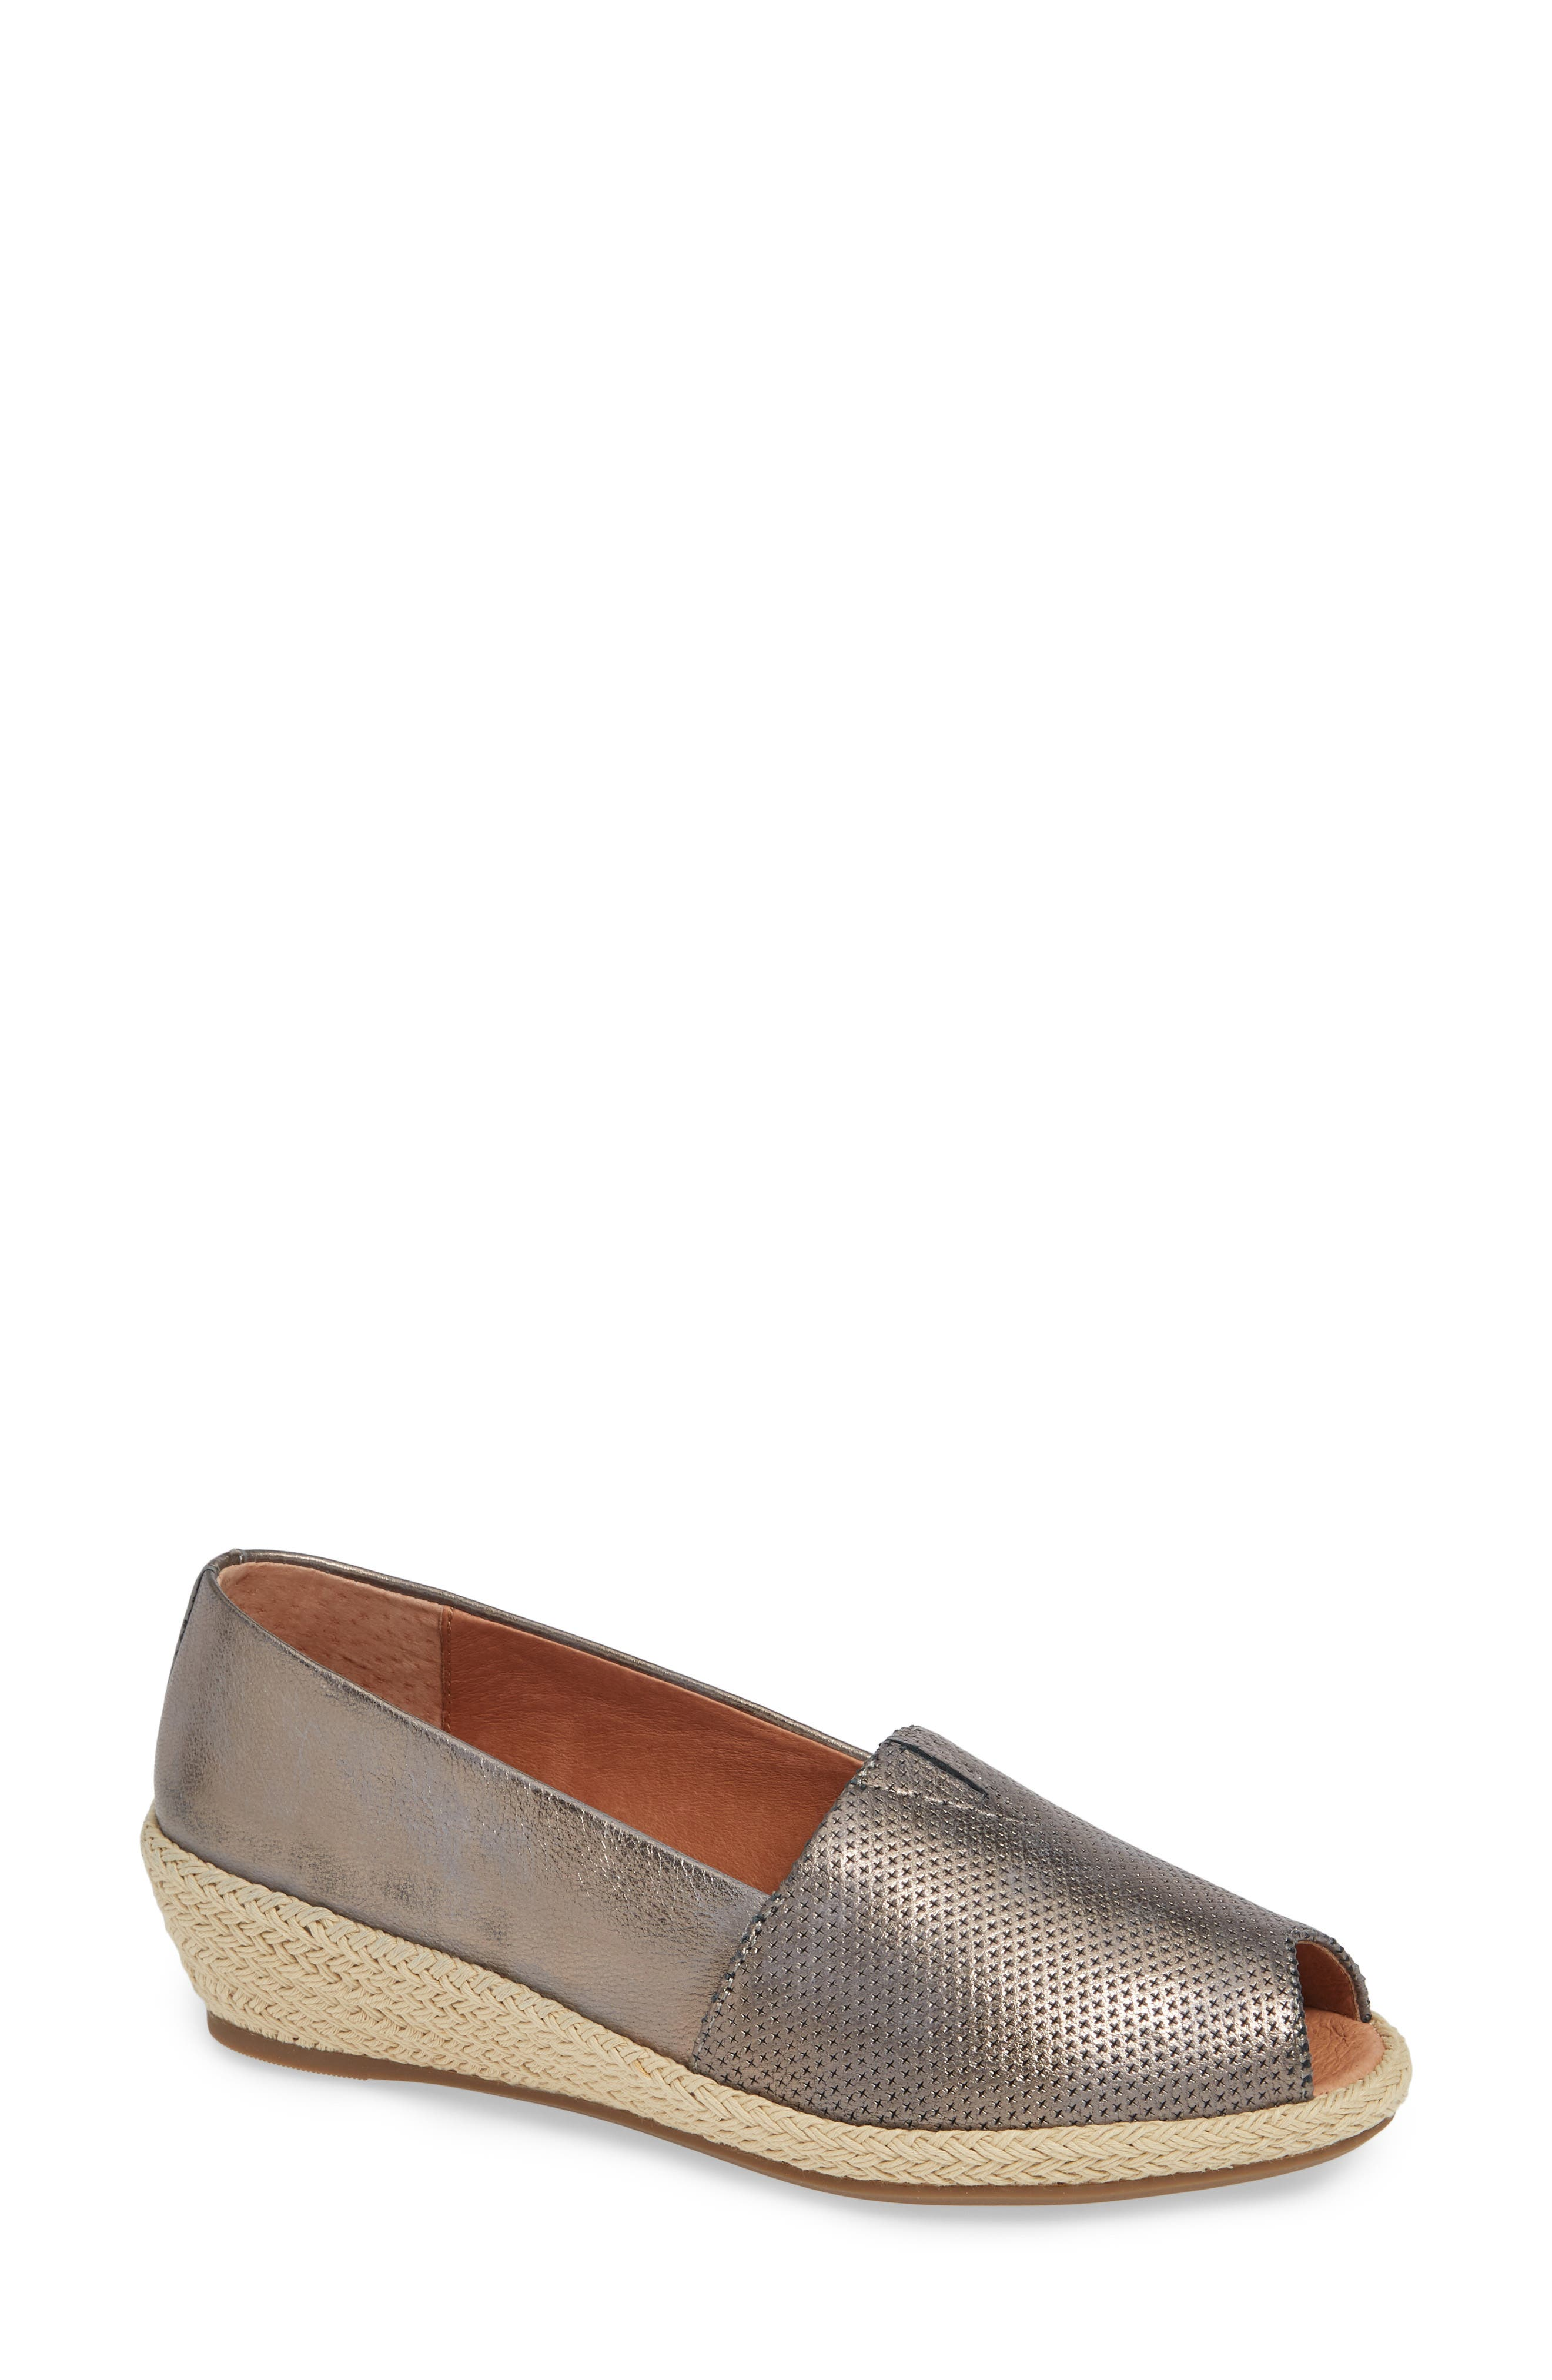 By Kenneth Cole Luca Open Toe Wedge Espadrille in Pewter Metallic Leather